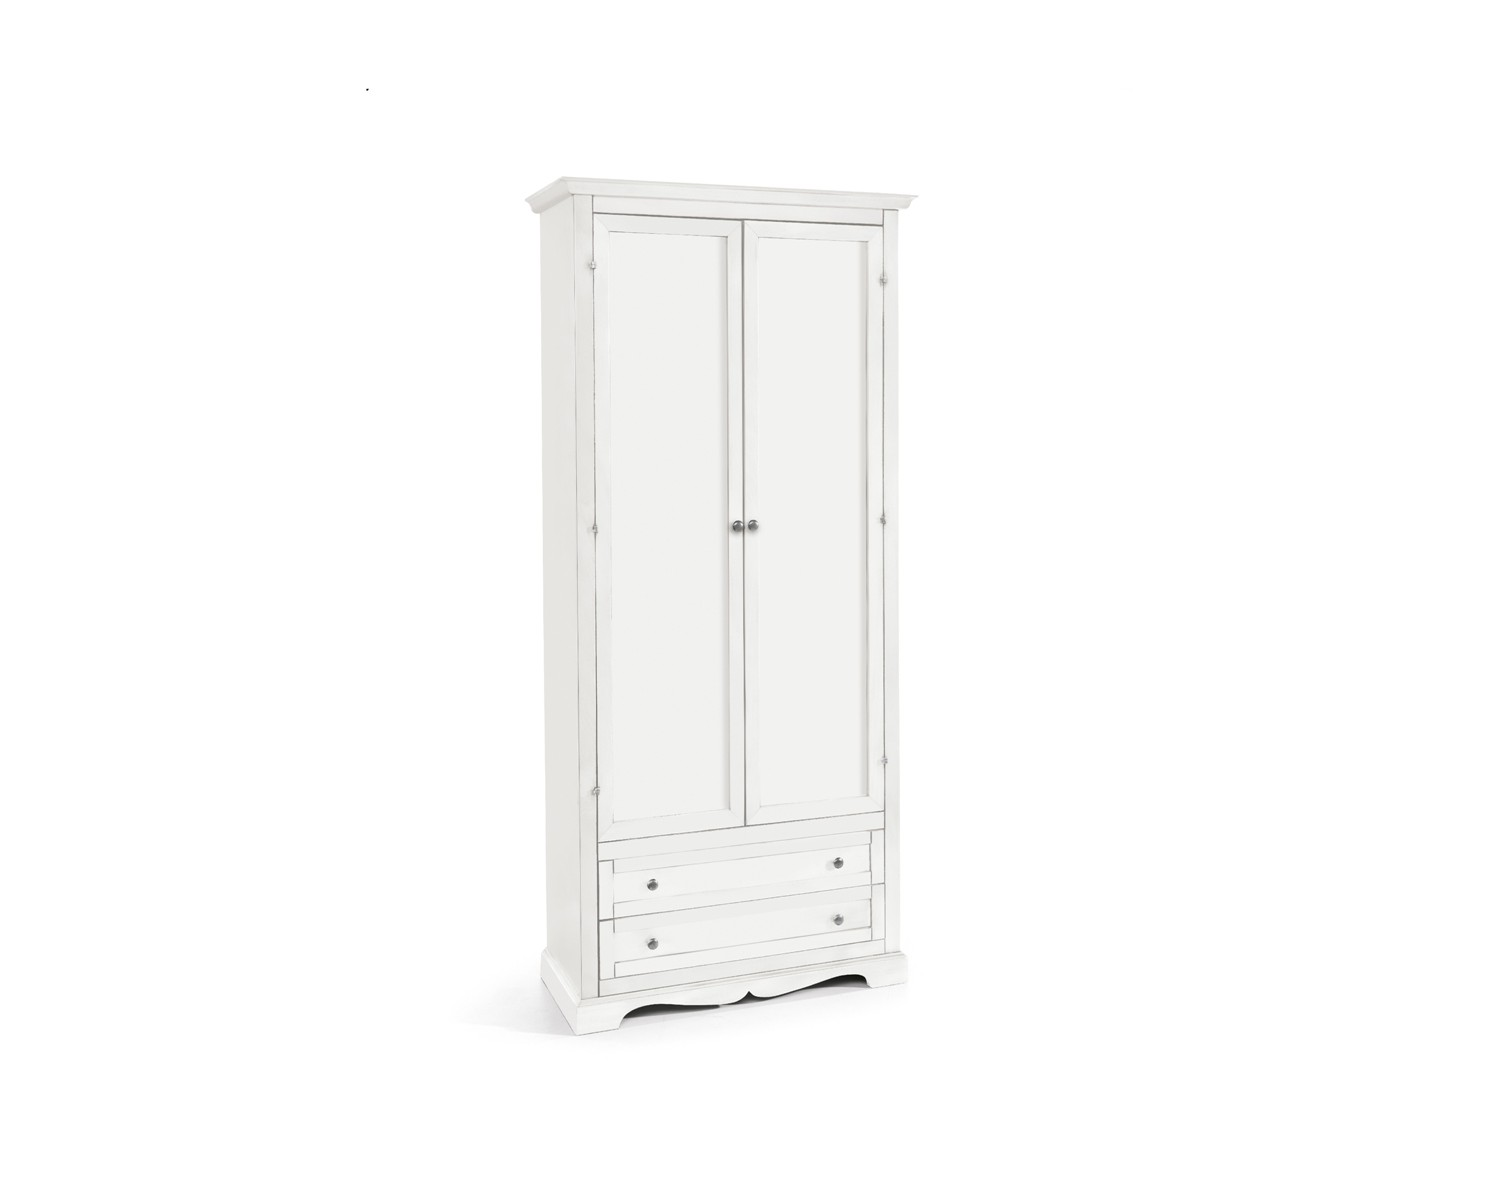 https://www.esteacasa.it/22501-thickbox_default/armadio-2-ante-in-legno-colore-bianco-opaco.jpg